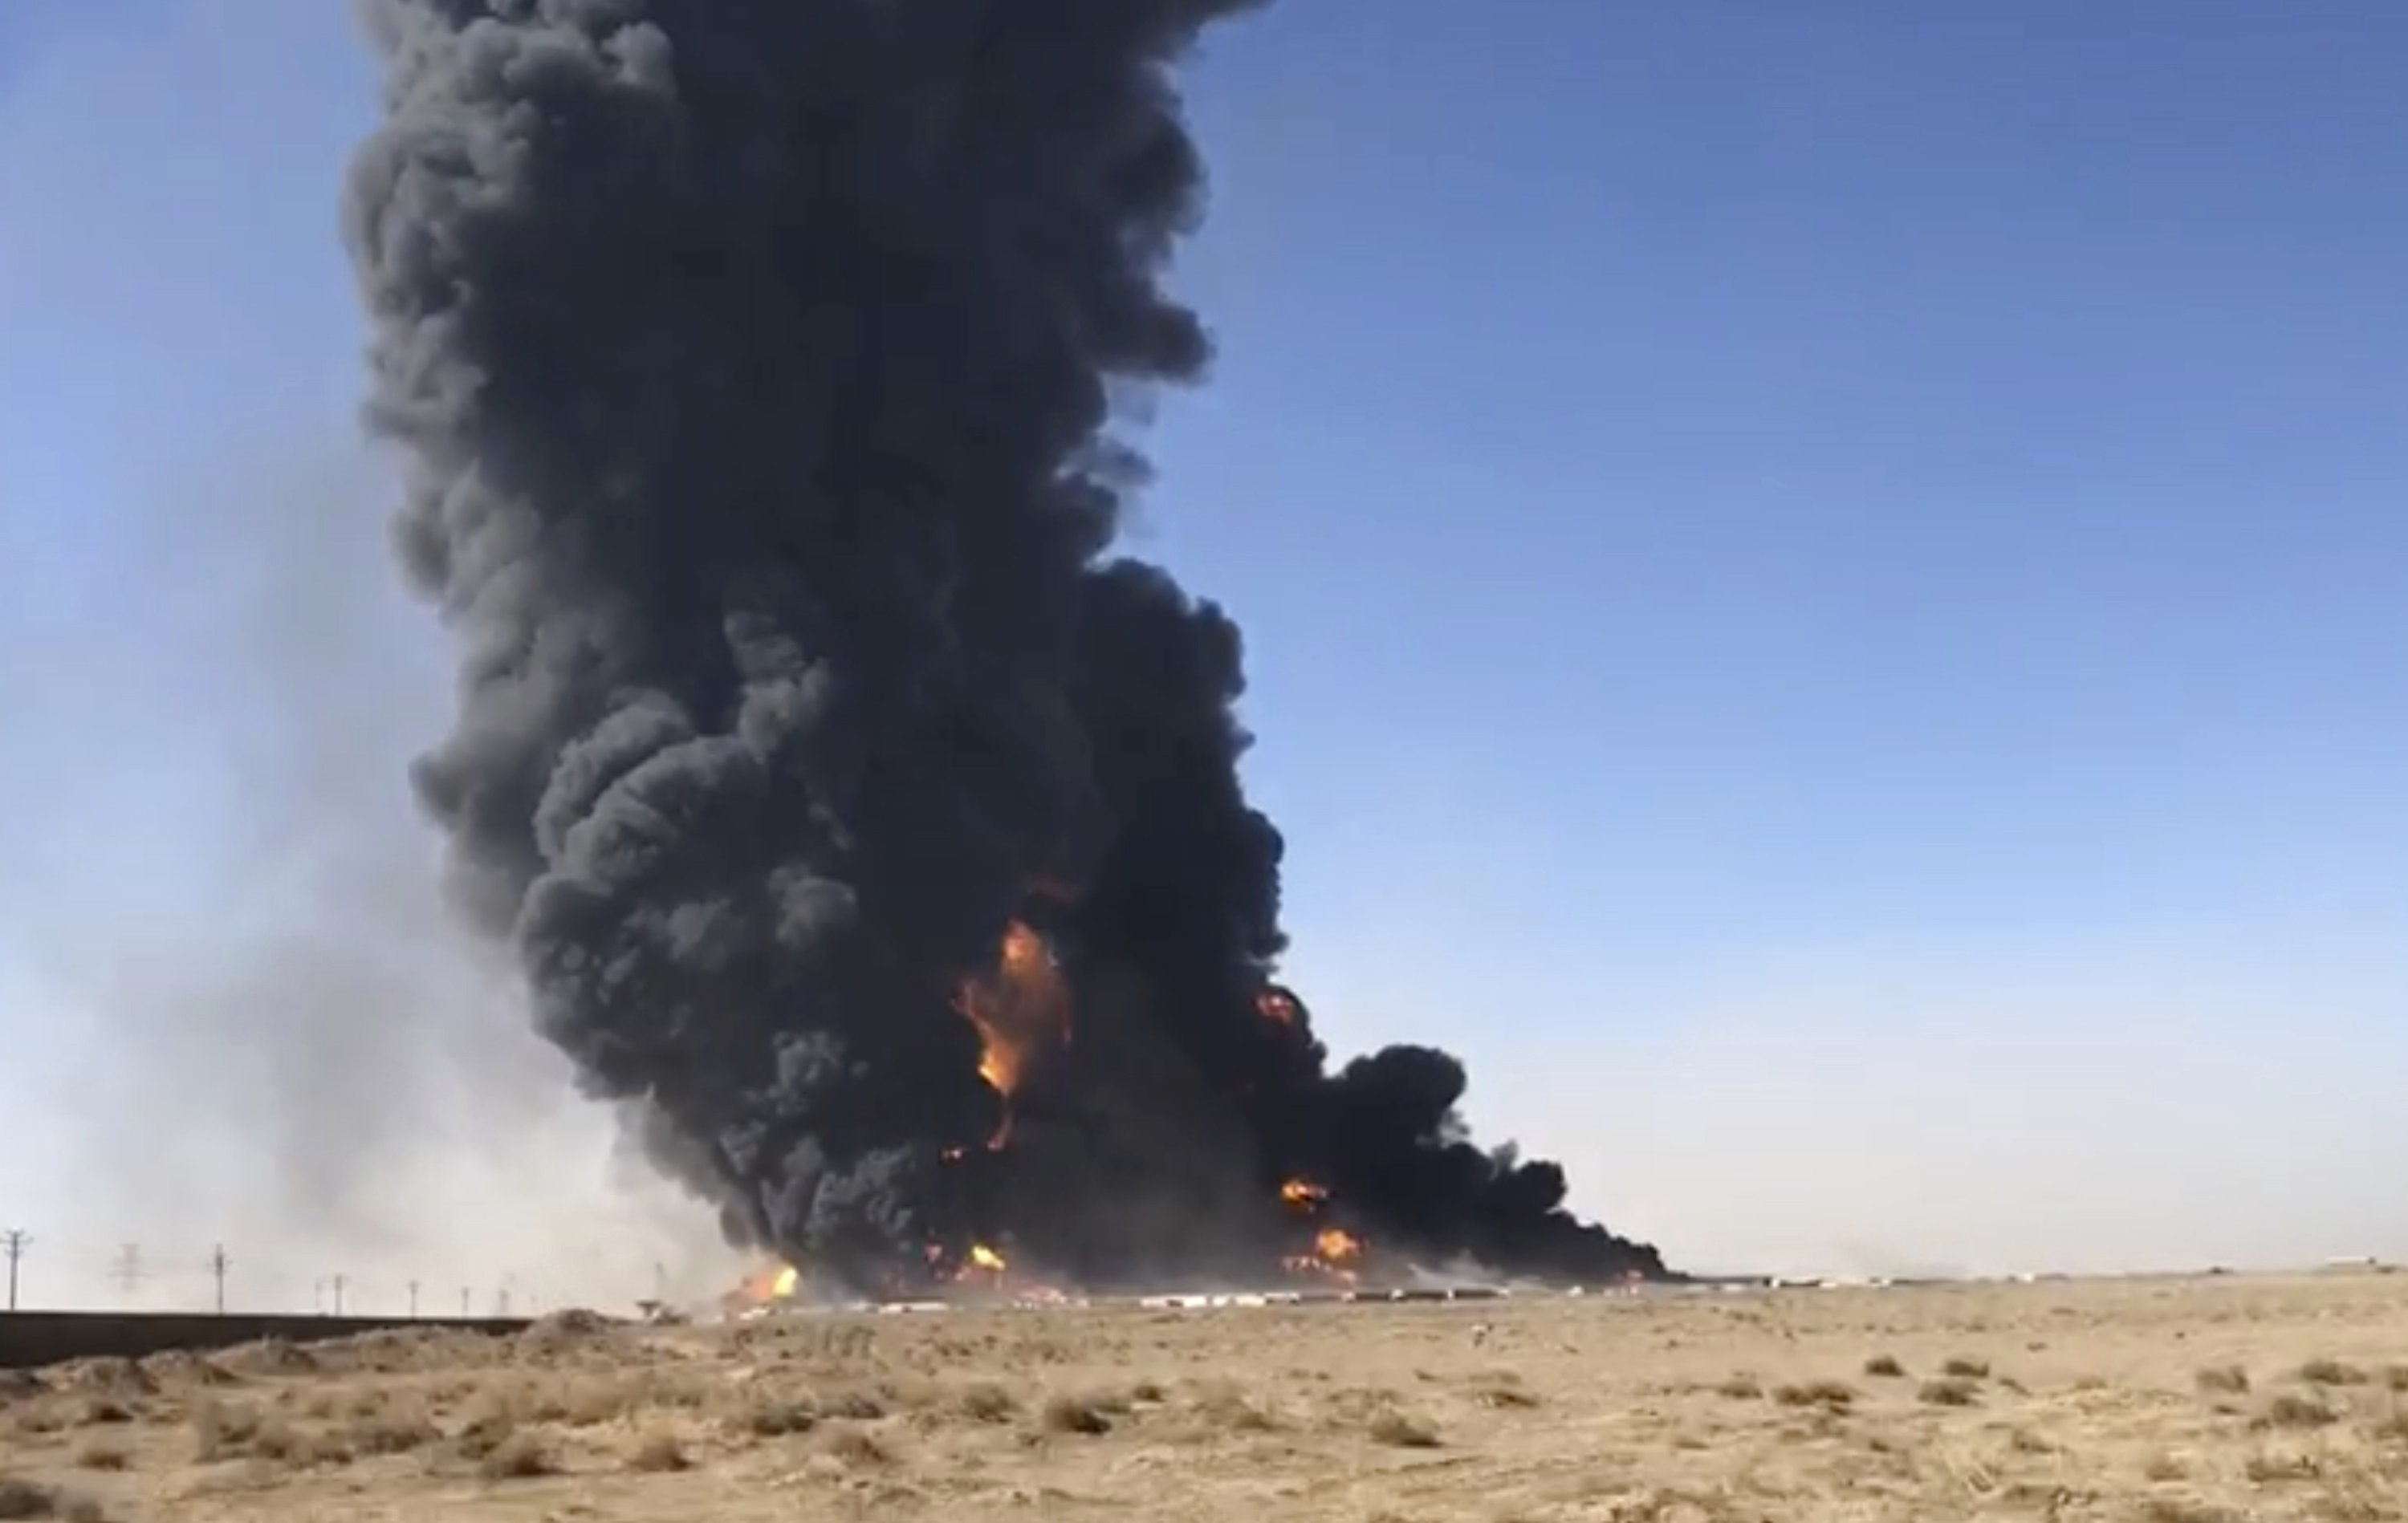 Smoke rises from fuel tankers at the Islam Qala border with Iran, in Herat Province, west of Kabul, Afghanistan, Feb. 13, 2021. (AP Photo)